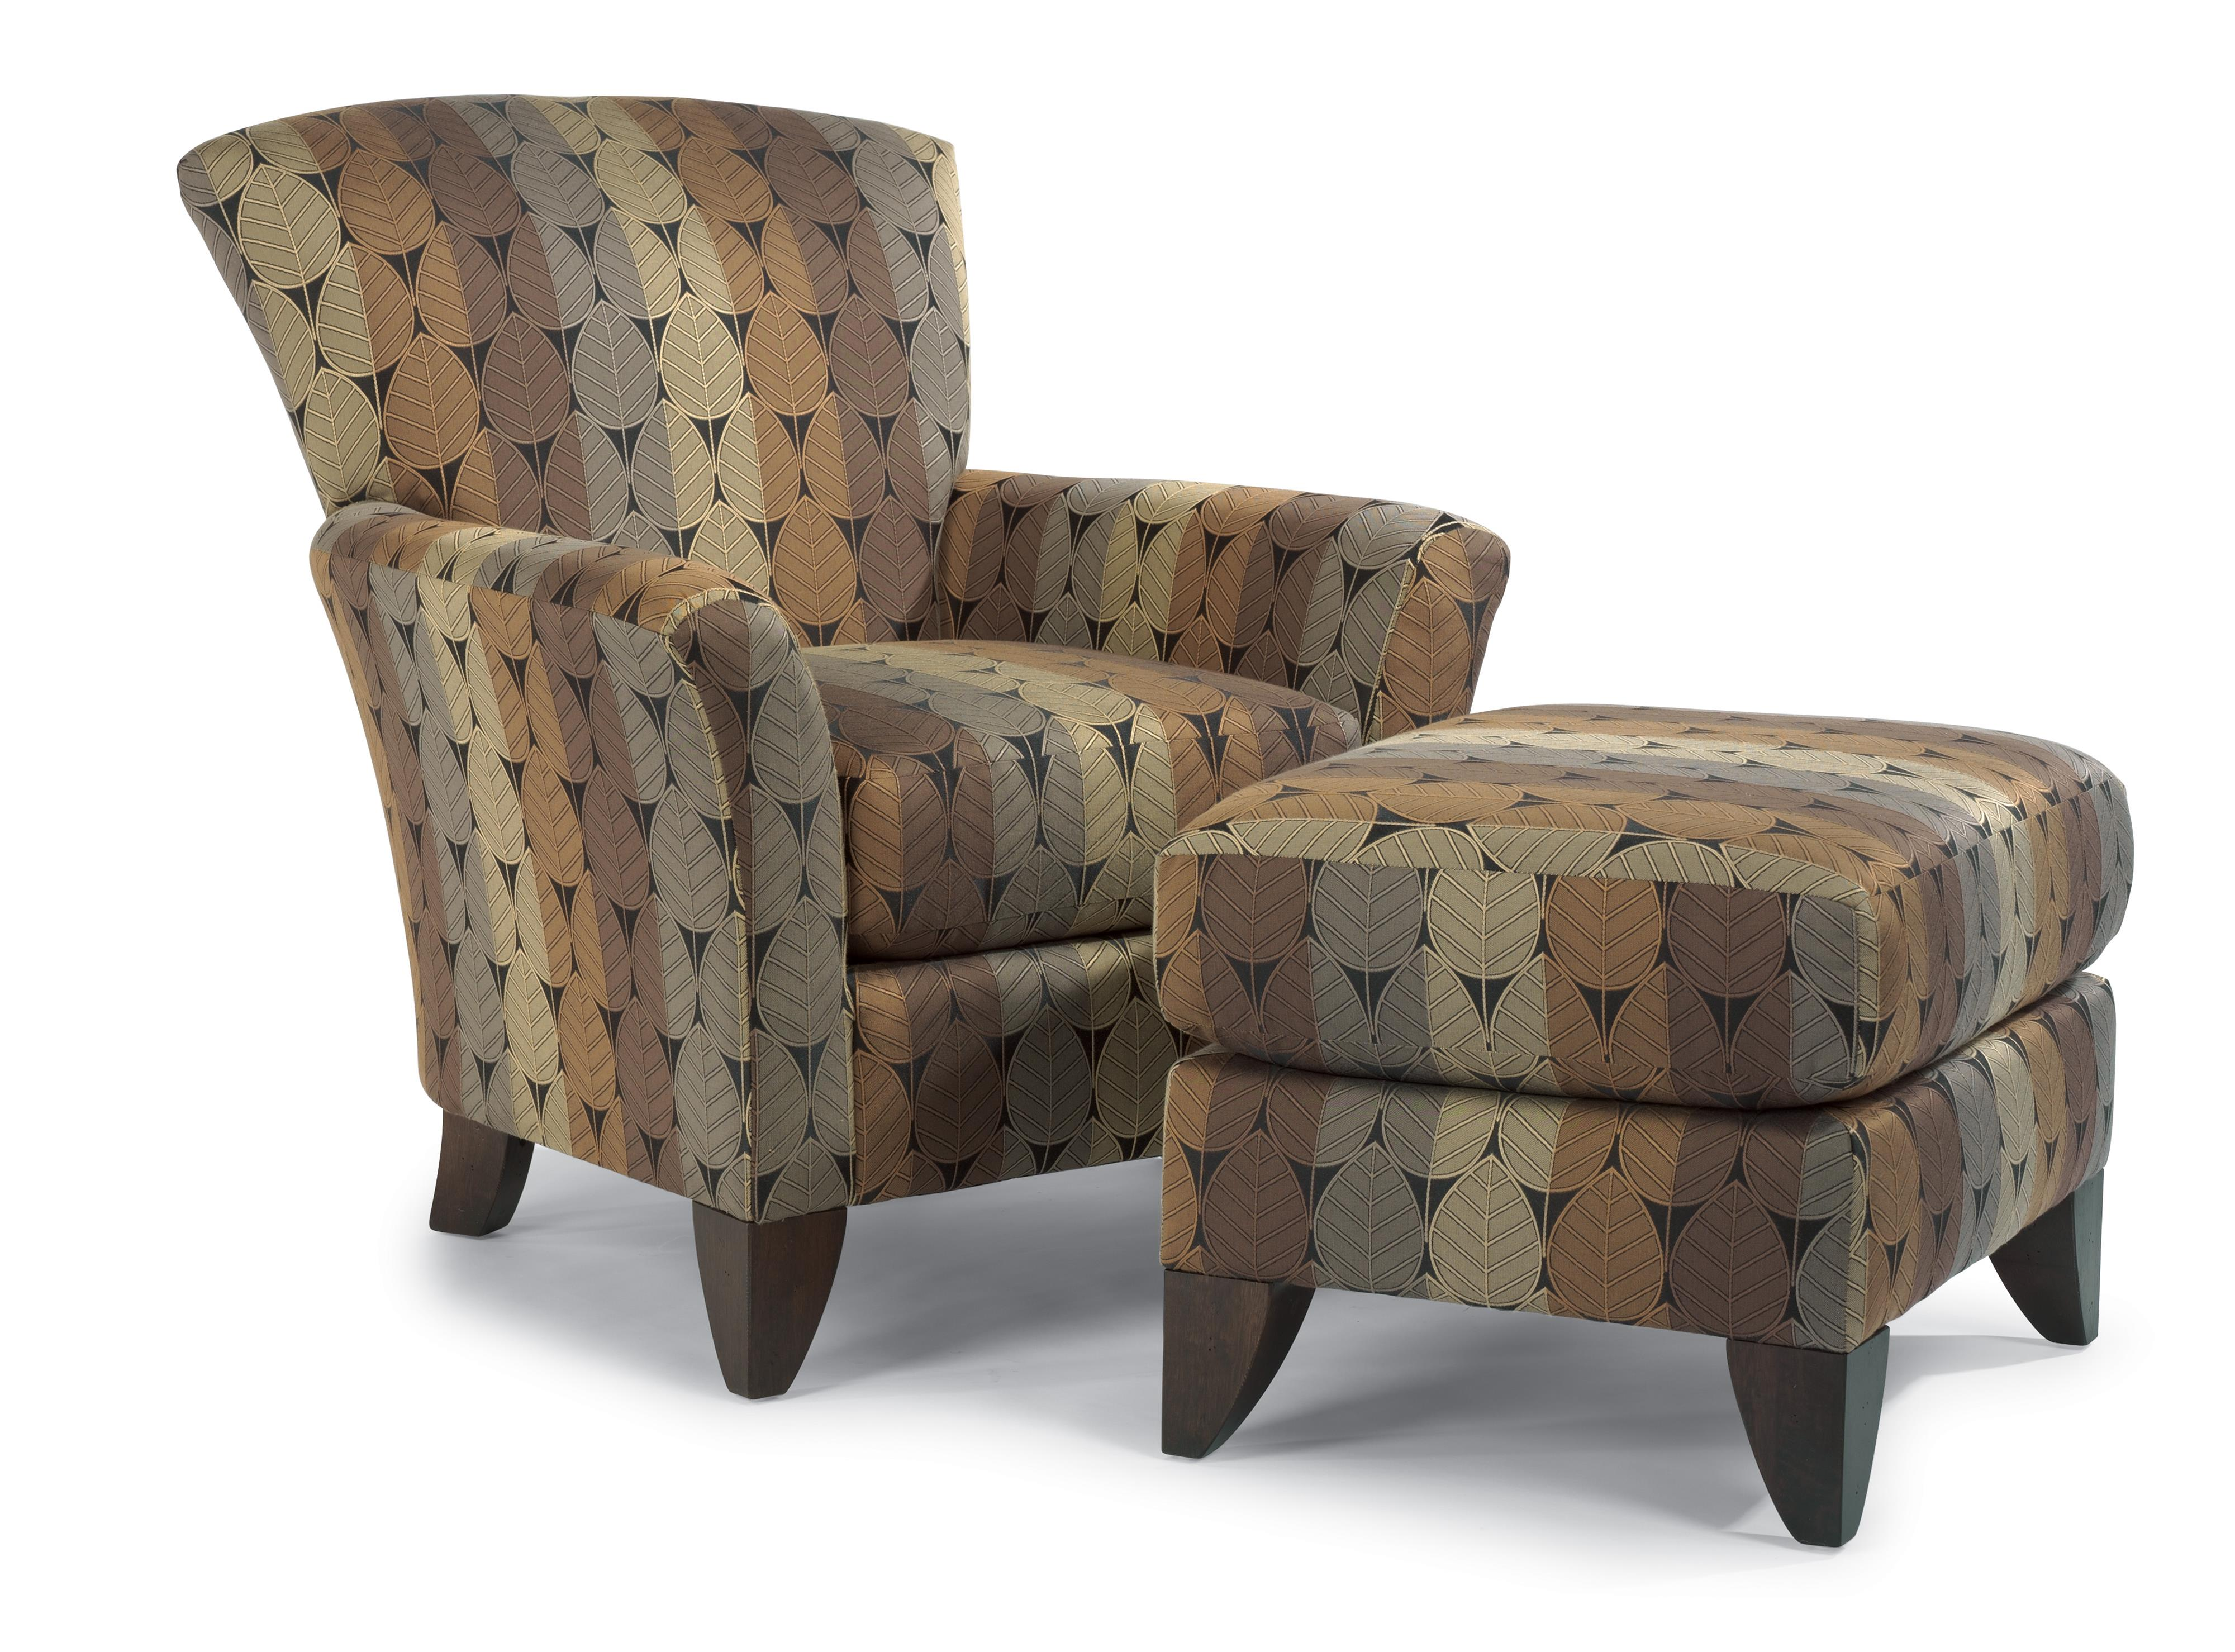 Flexsteel Accents Chair & Ottoman Set - Item Number: 030C-10+030C-08